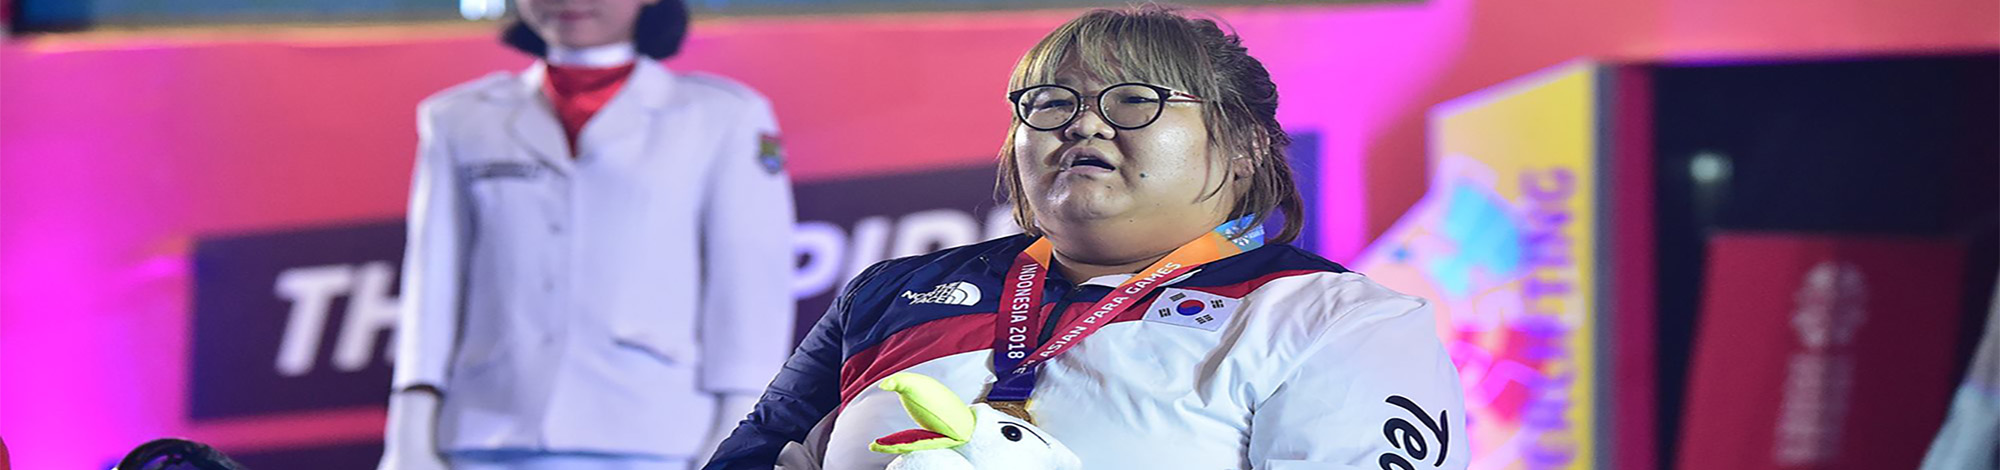 Korea Powerlifting Federation for the Disabled